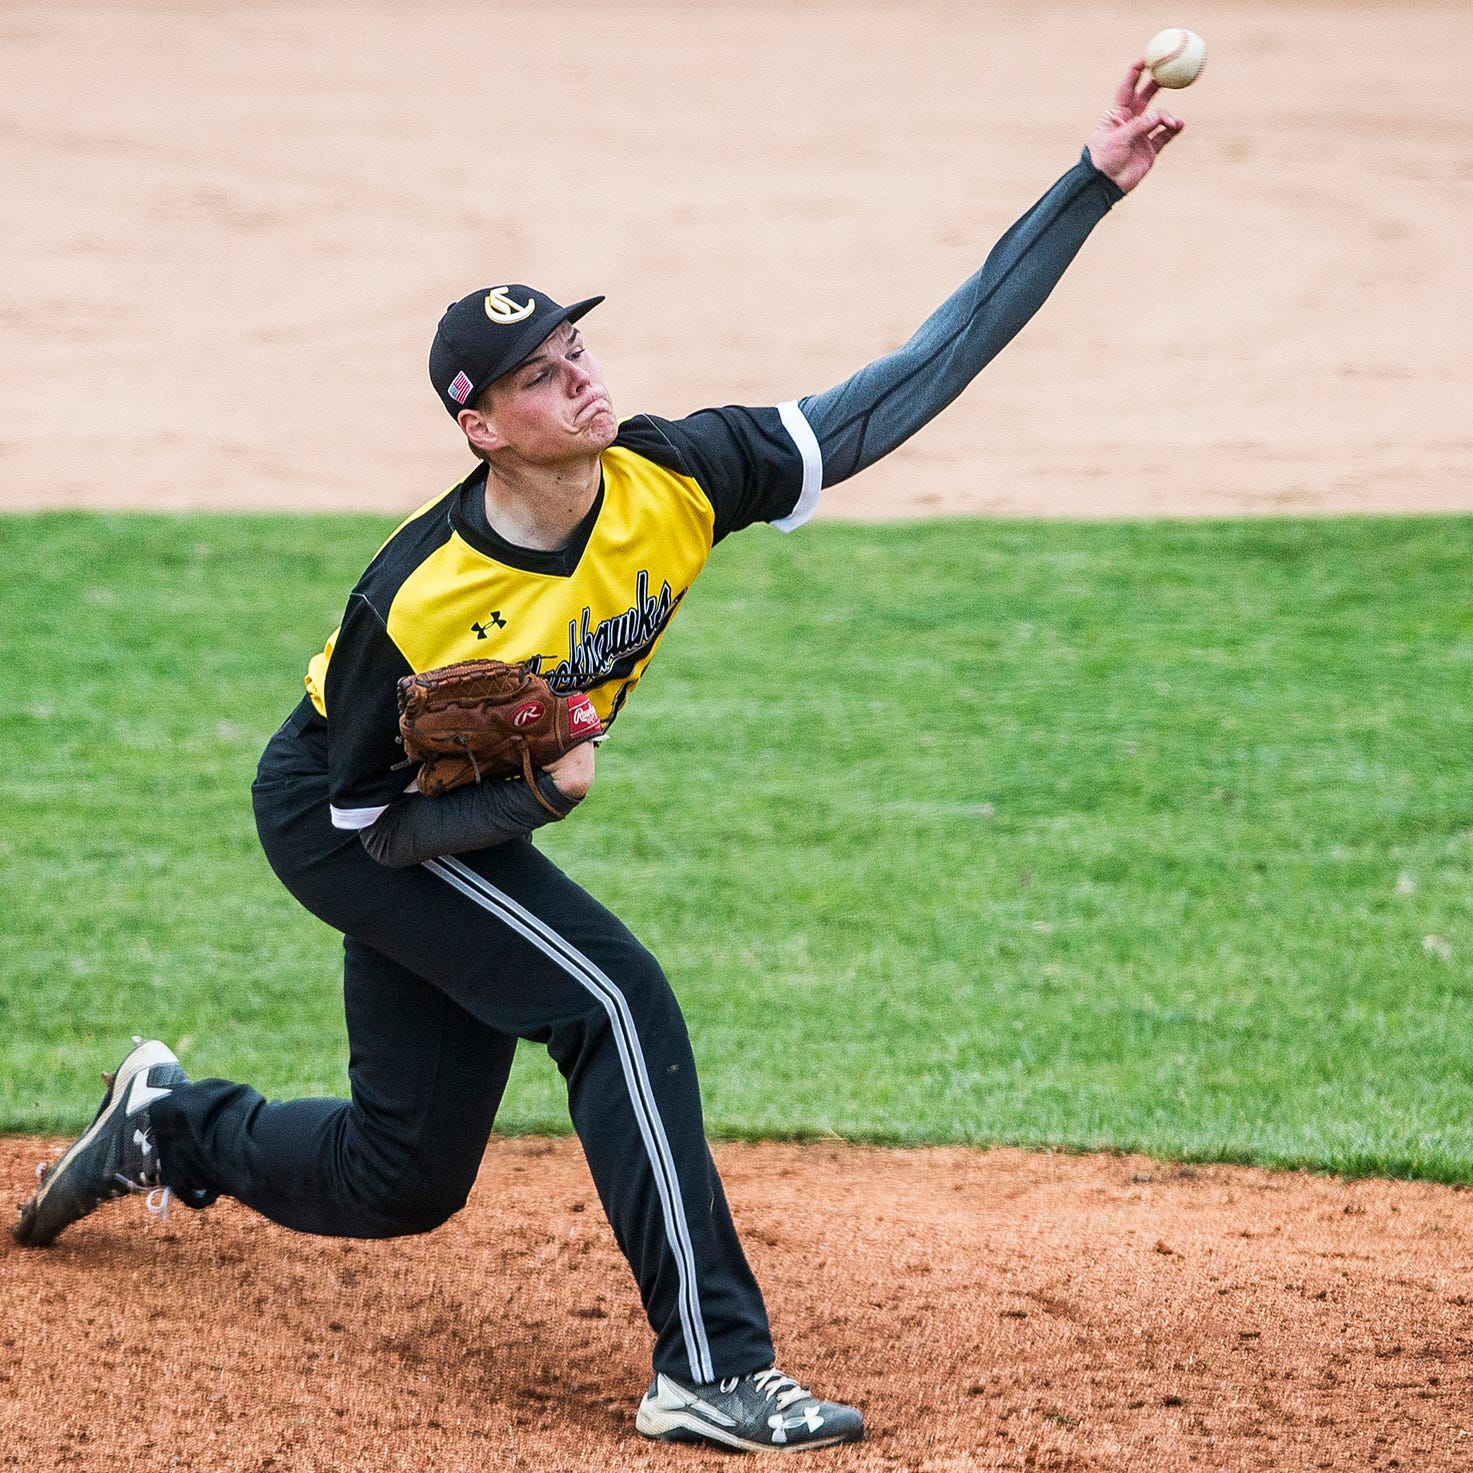 'A different pain': Tommy John surgery forced Cowan pitcher off the mound, now he's back